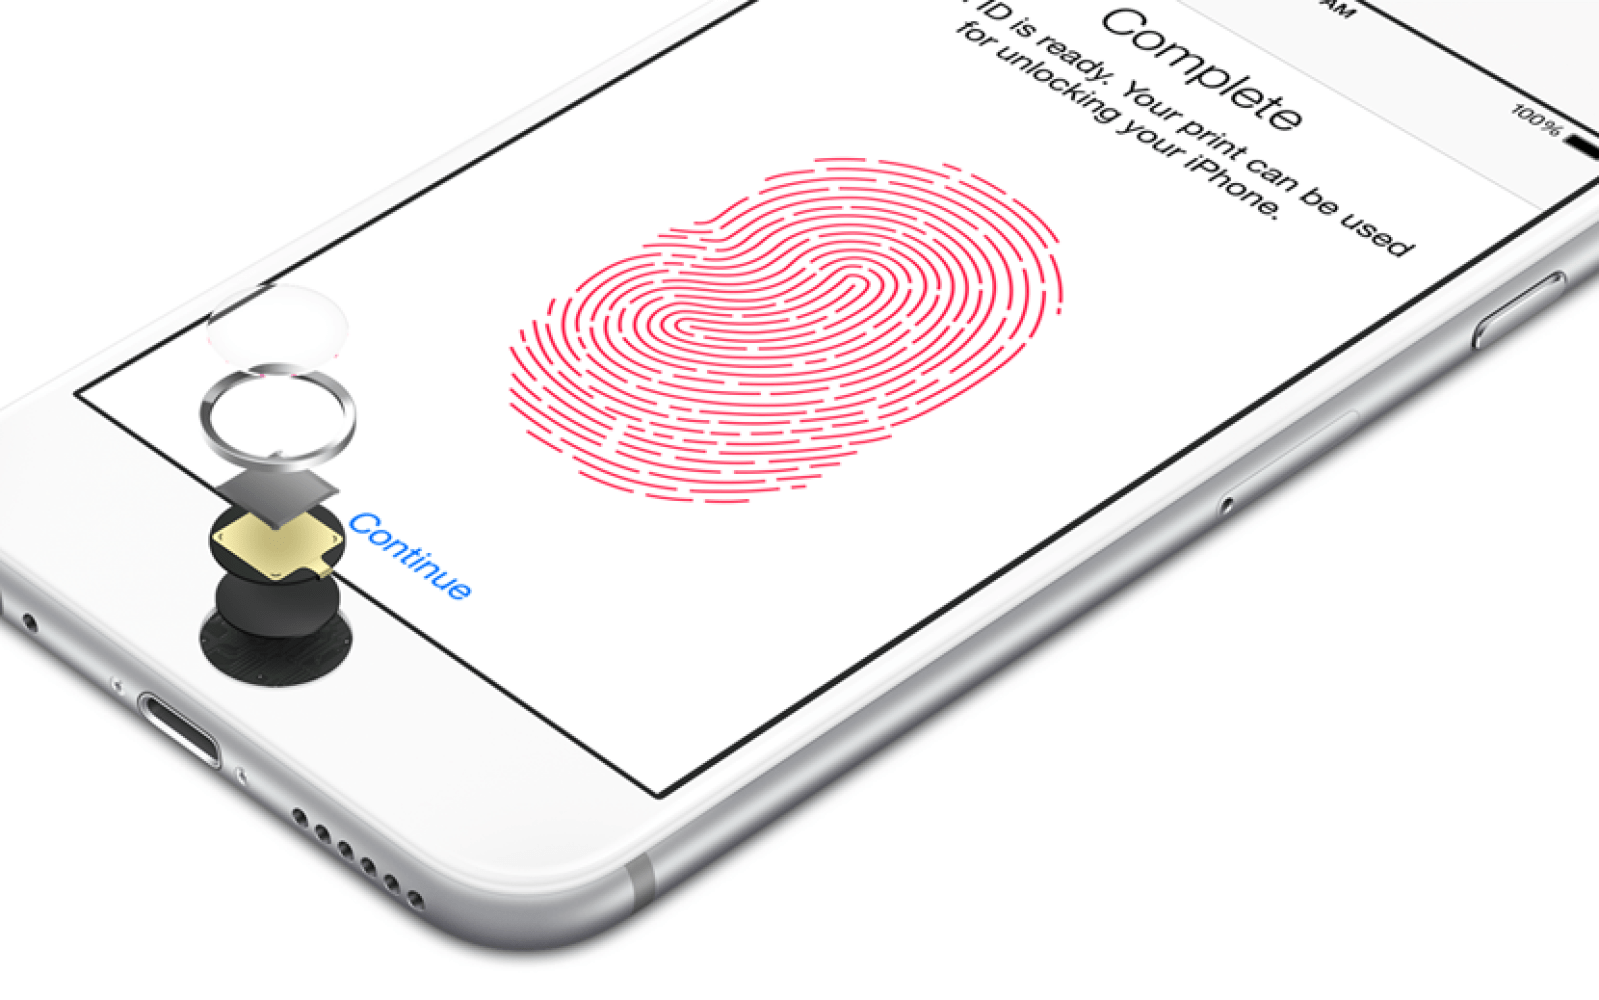 U.S. court rules that phone passcodes are protected by the 5th Amendment, but fingerprints aren't